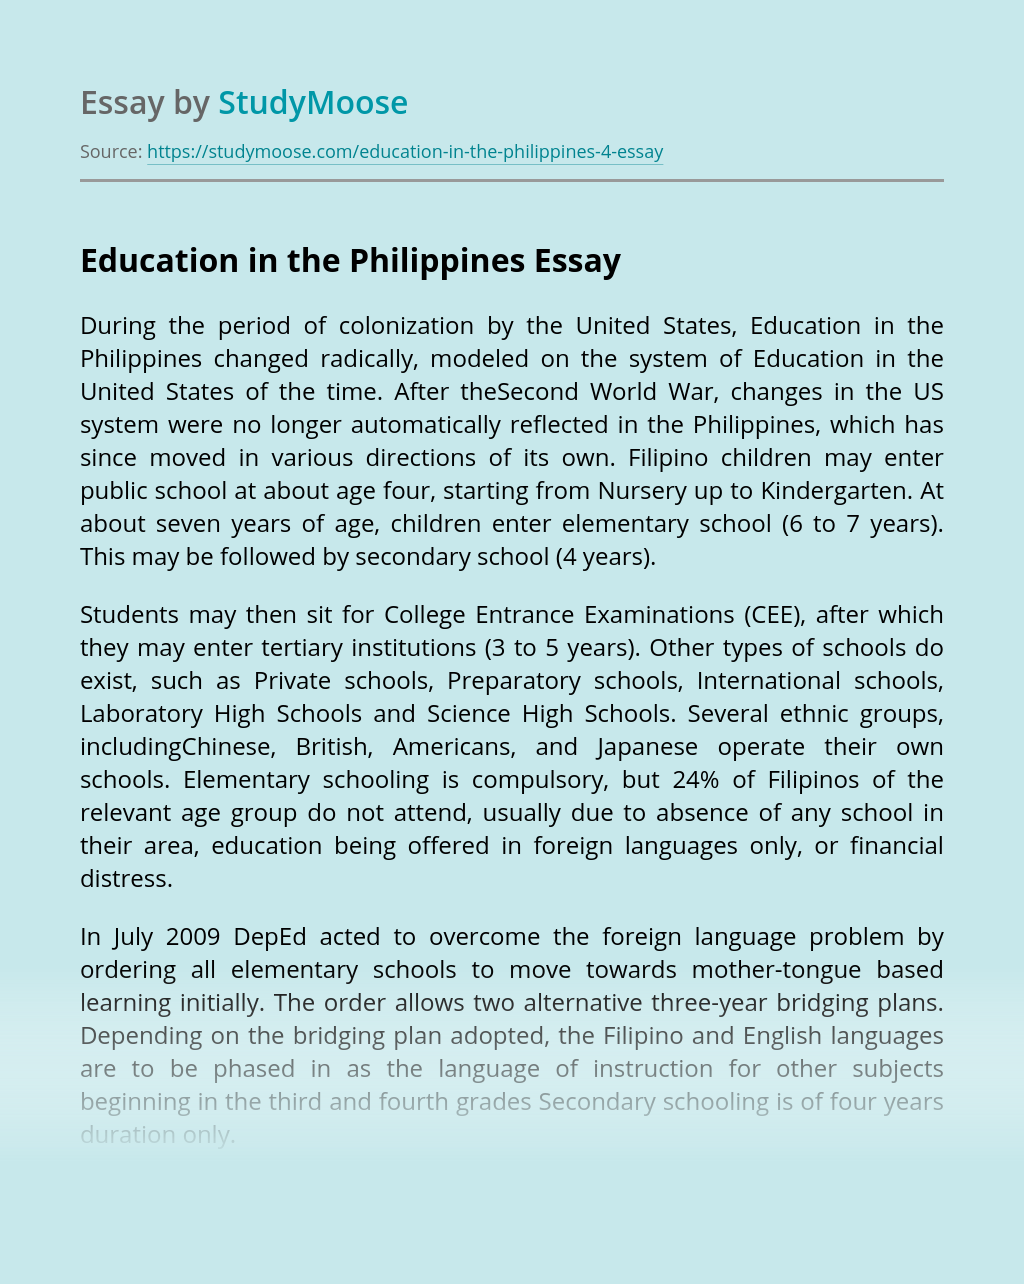 Education in the Philippines